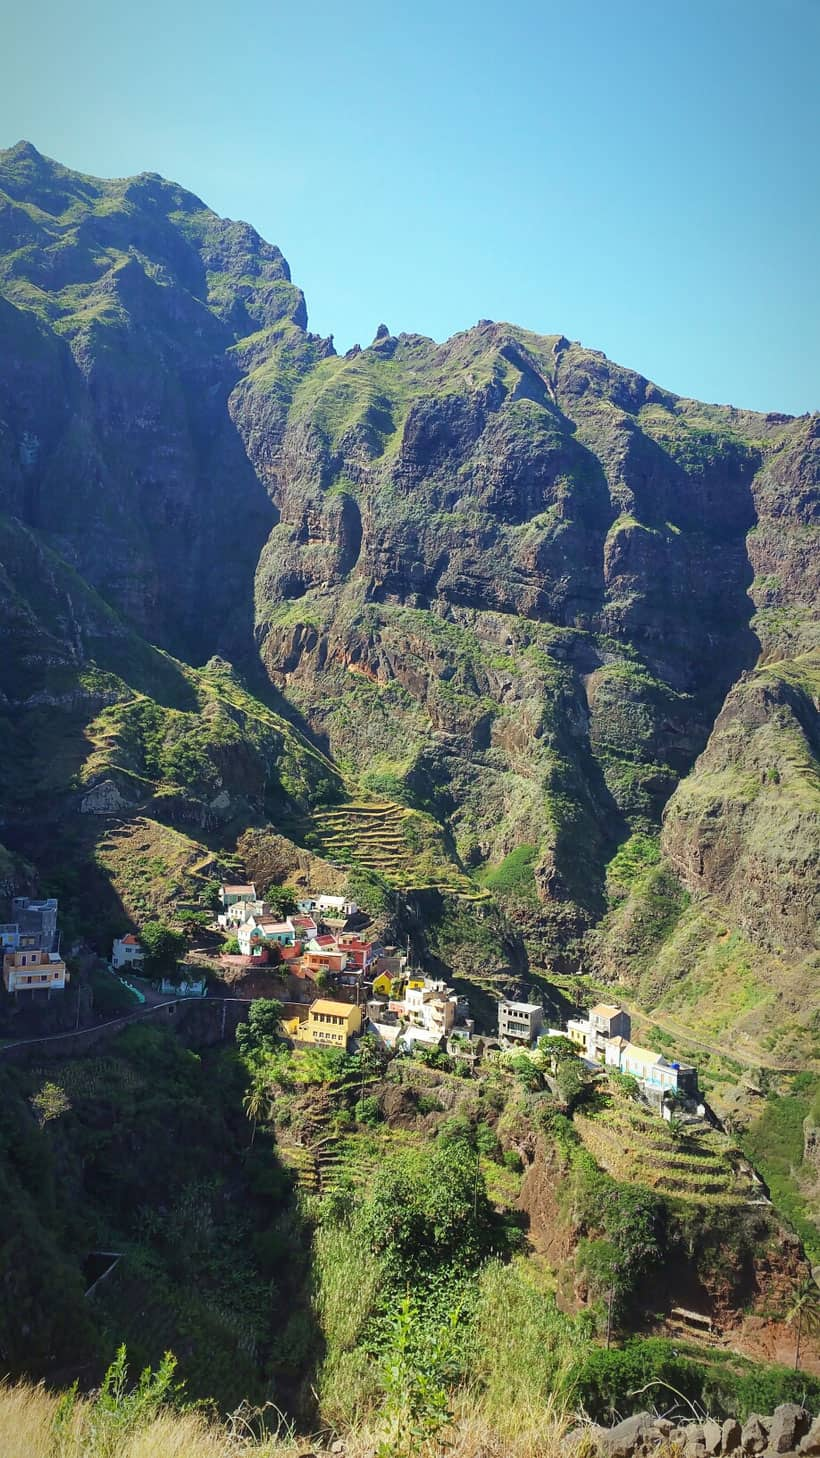 mindelo, cabo verde, cape verde,santo antao, hiking, trekking, hike, trail, what to do, sao vicente, food, restaurant, marina, boat, party, music, shopping, outdoor, ferry, africa, portugal, views, landscapes, ocean, paul, cap vert, fontainhas